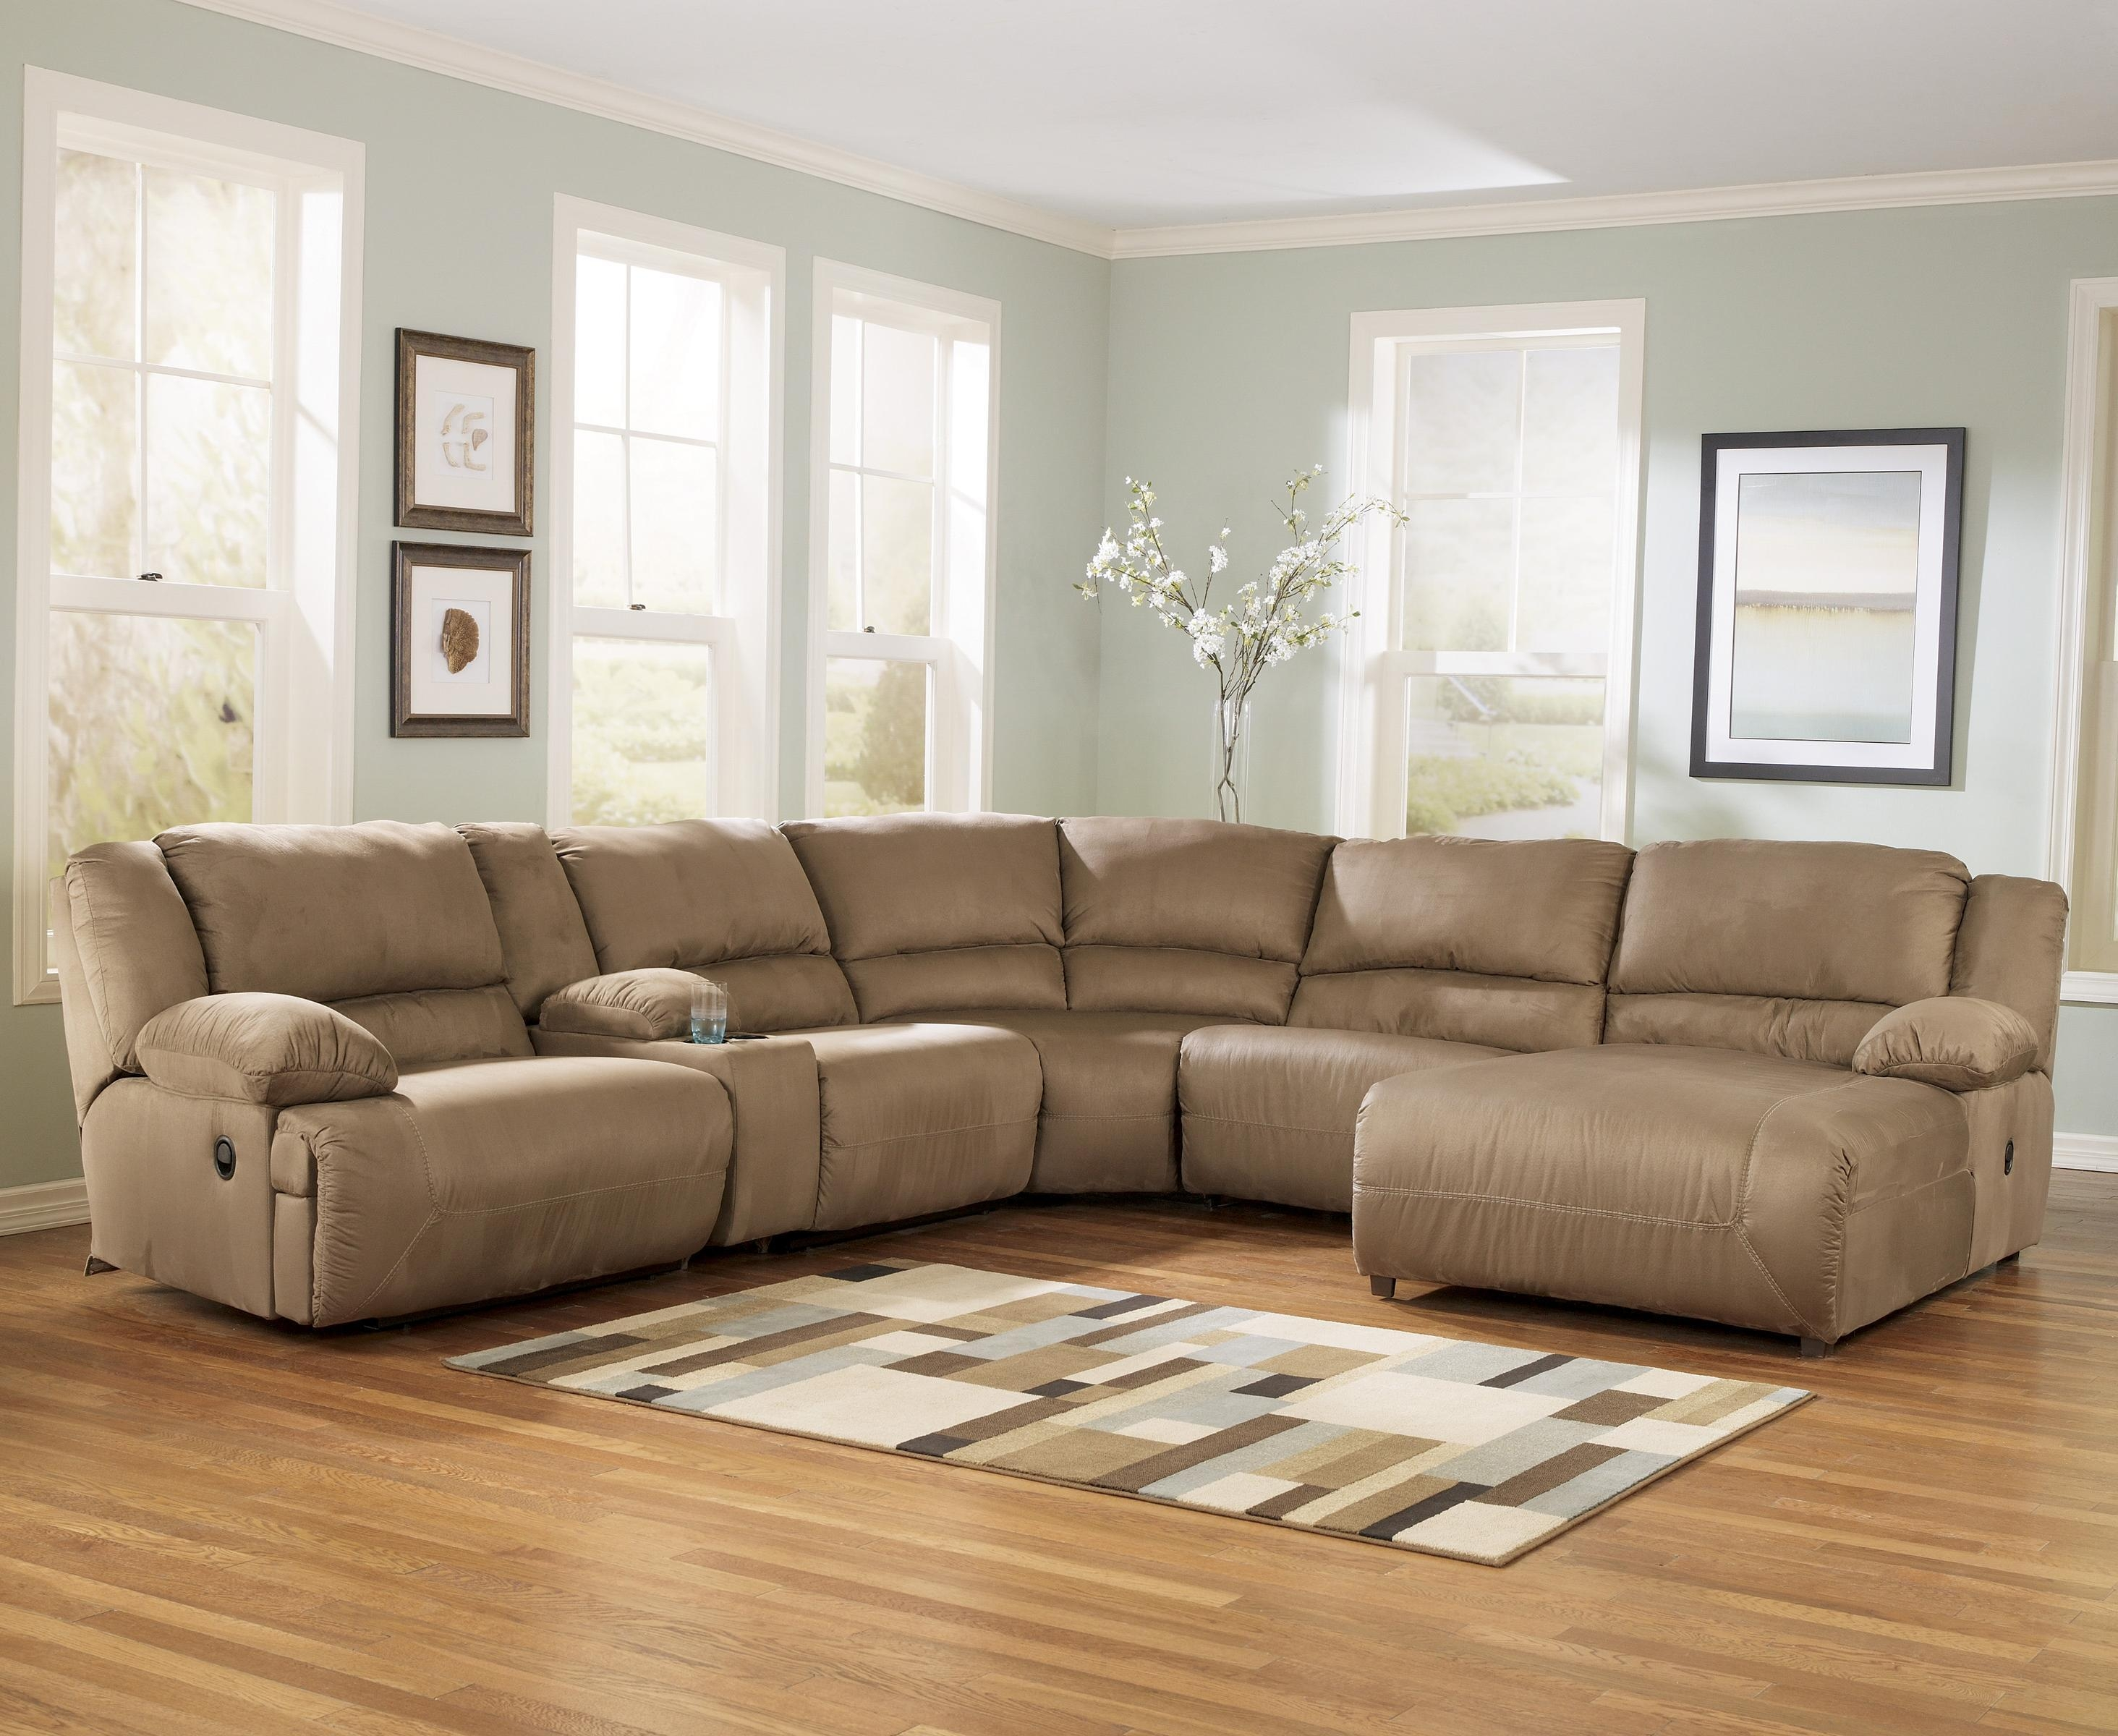 2017 Latest 6 Piece Sectional Sofas Couches Sofa Ideas